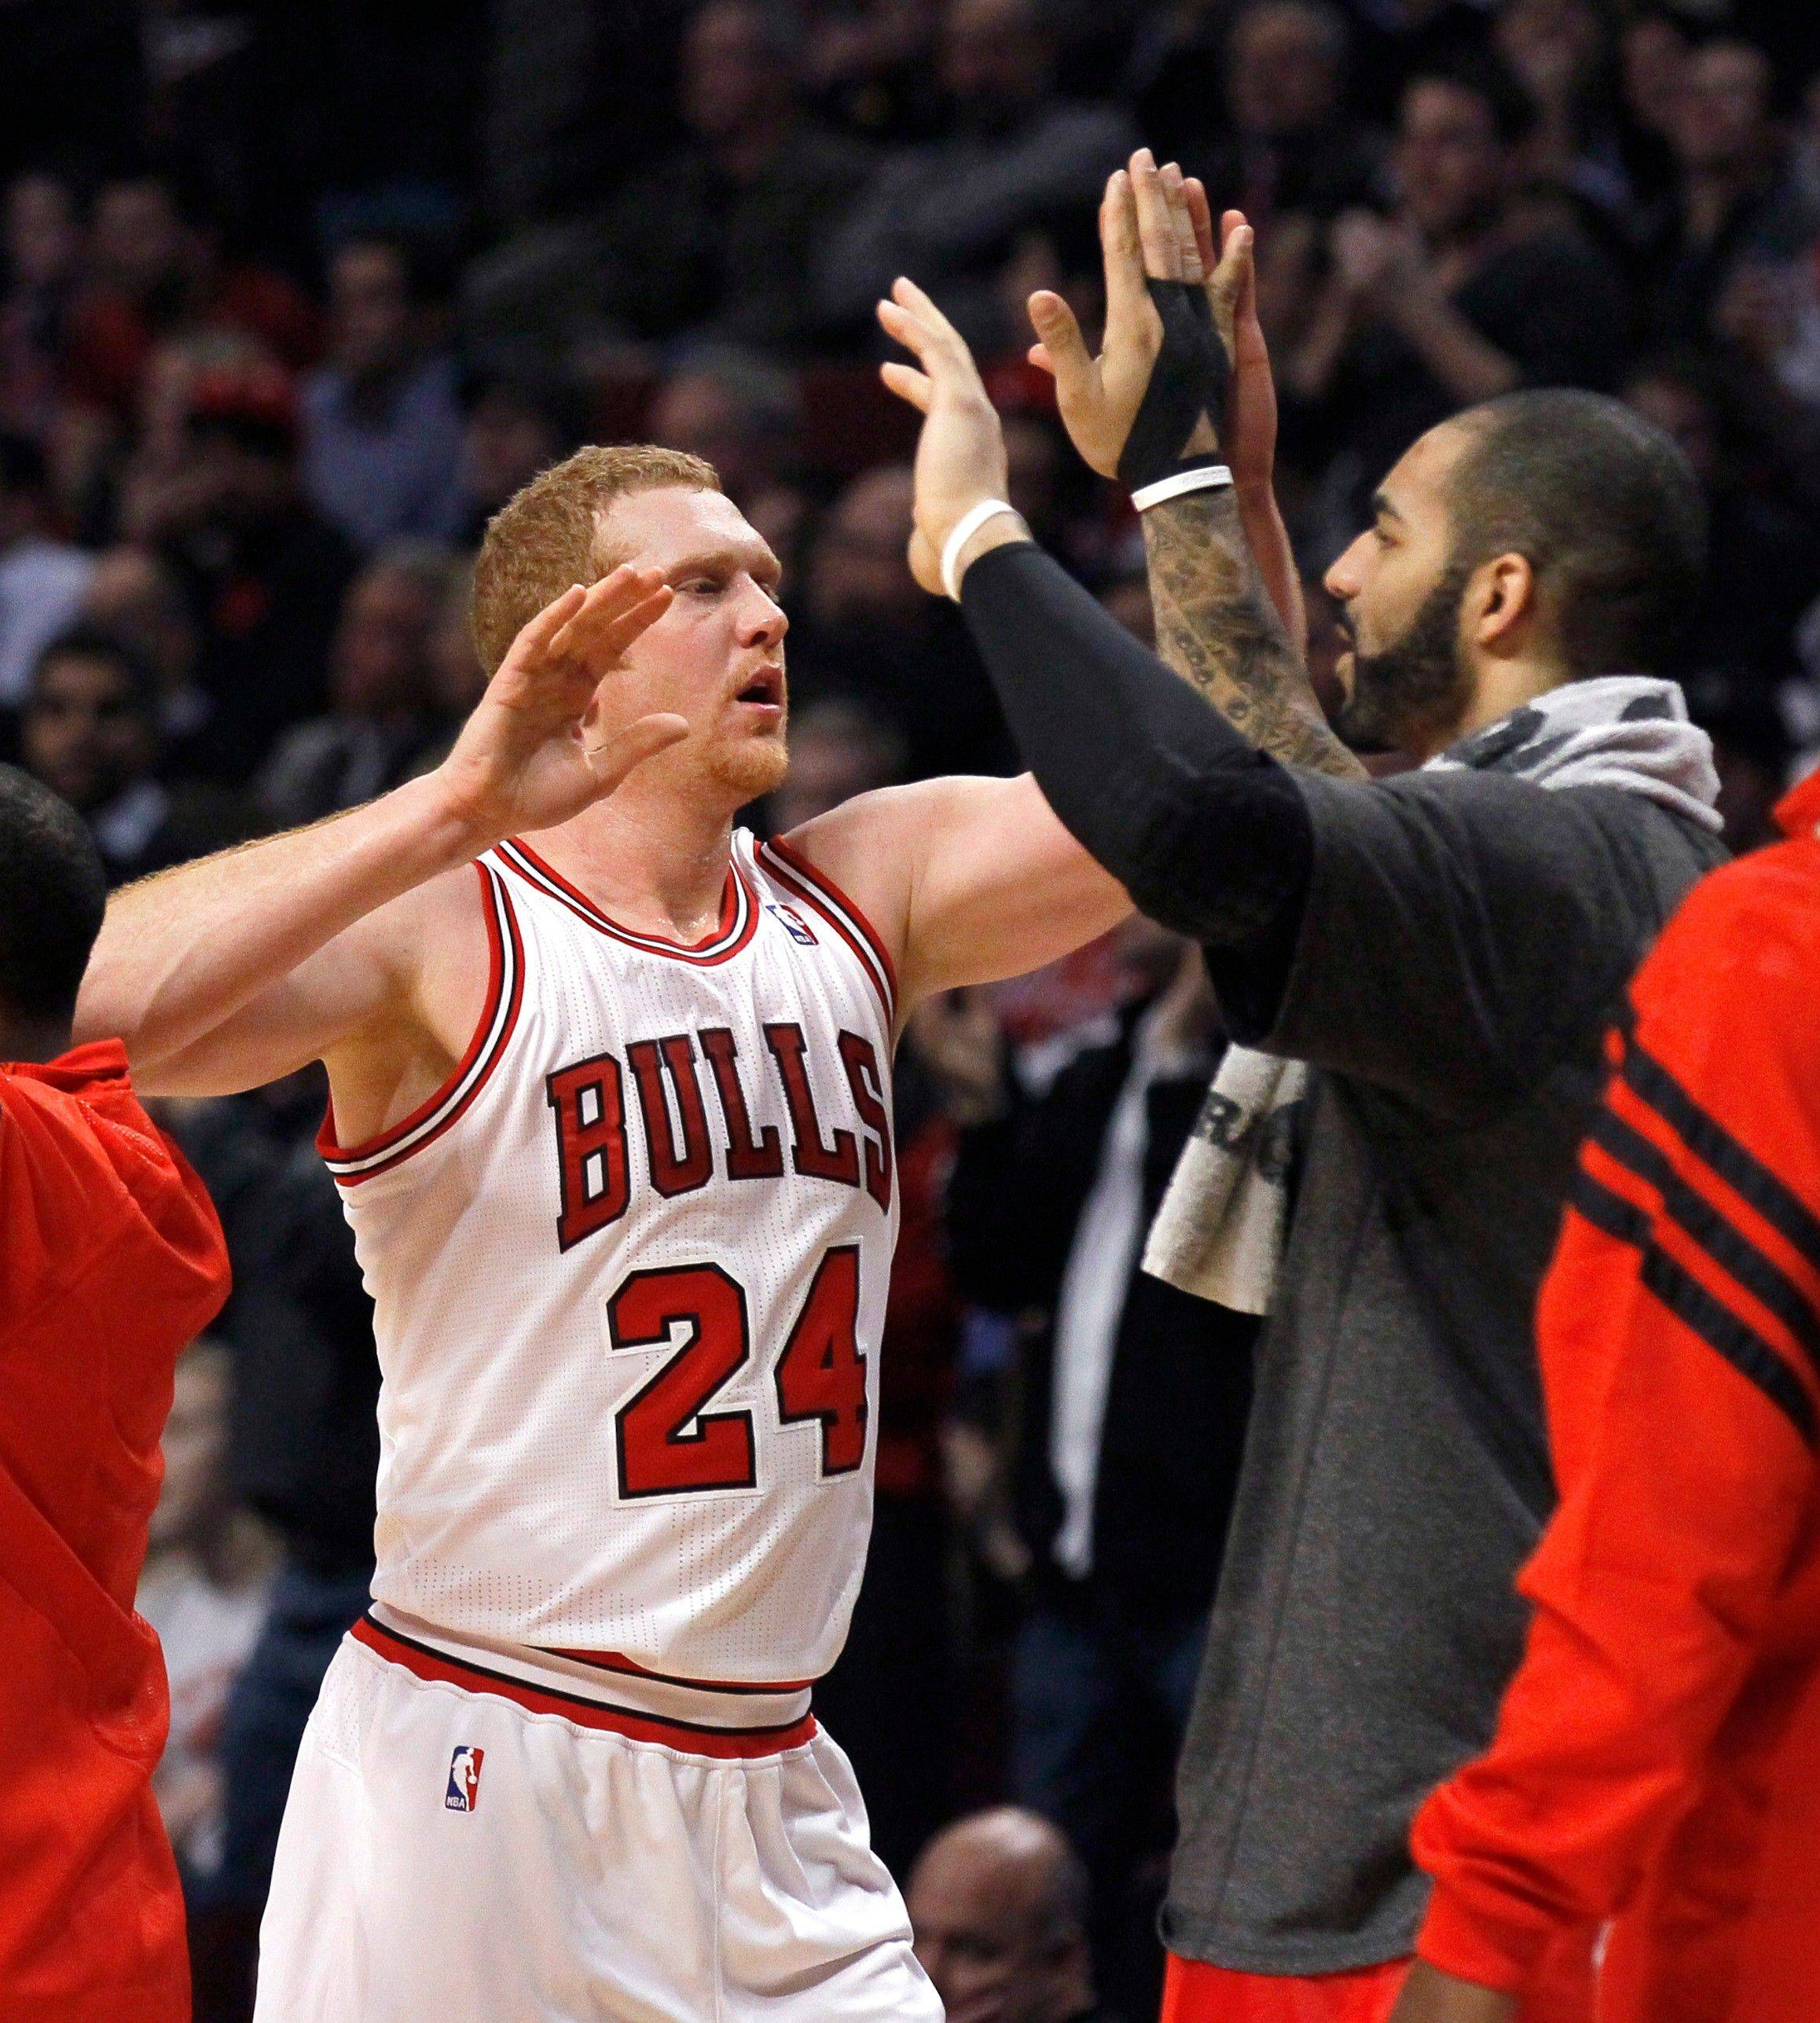 Bulls' Scalabrine showing what he's got